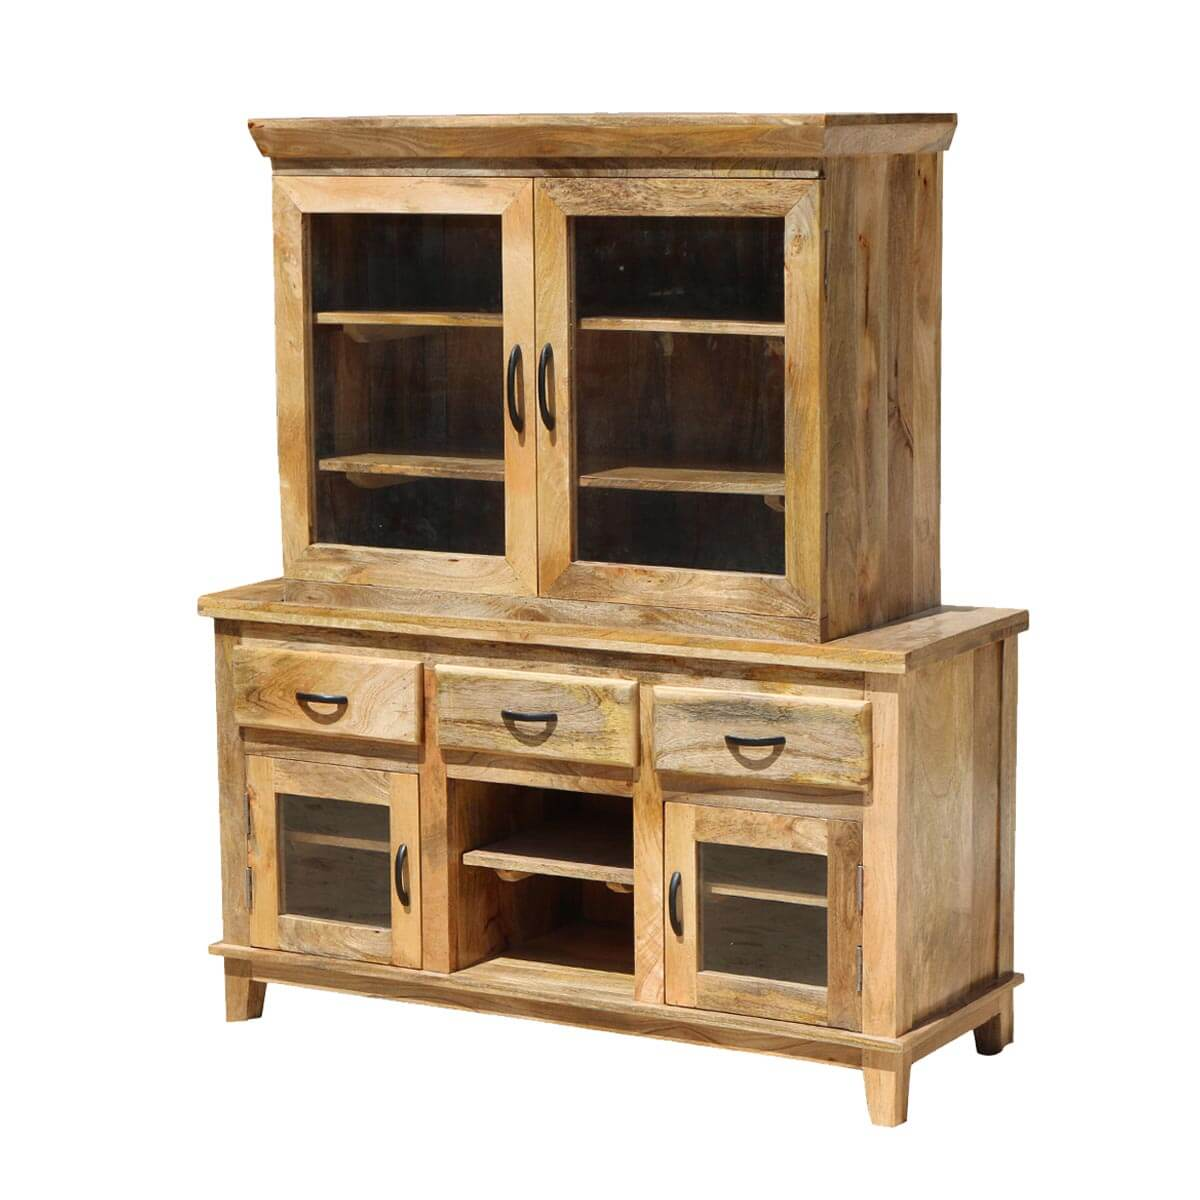 Rustic Shaker Mango Wood Glass Door Dining Hutch Sideboard